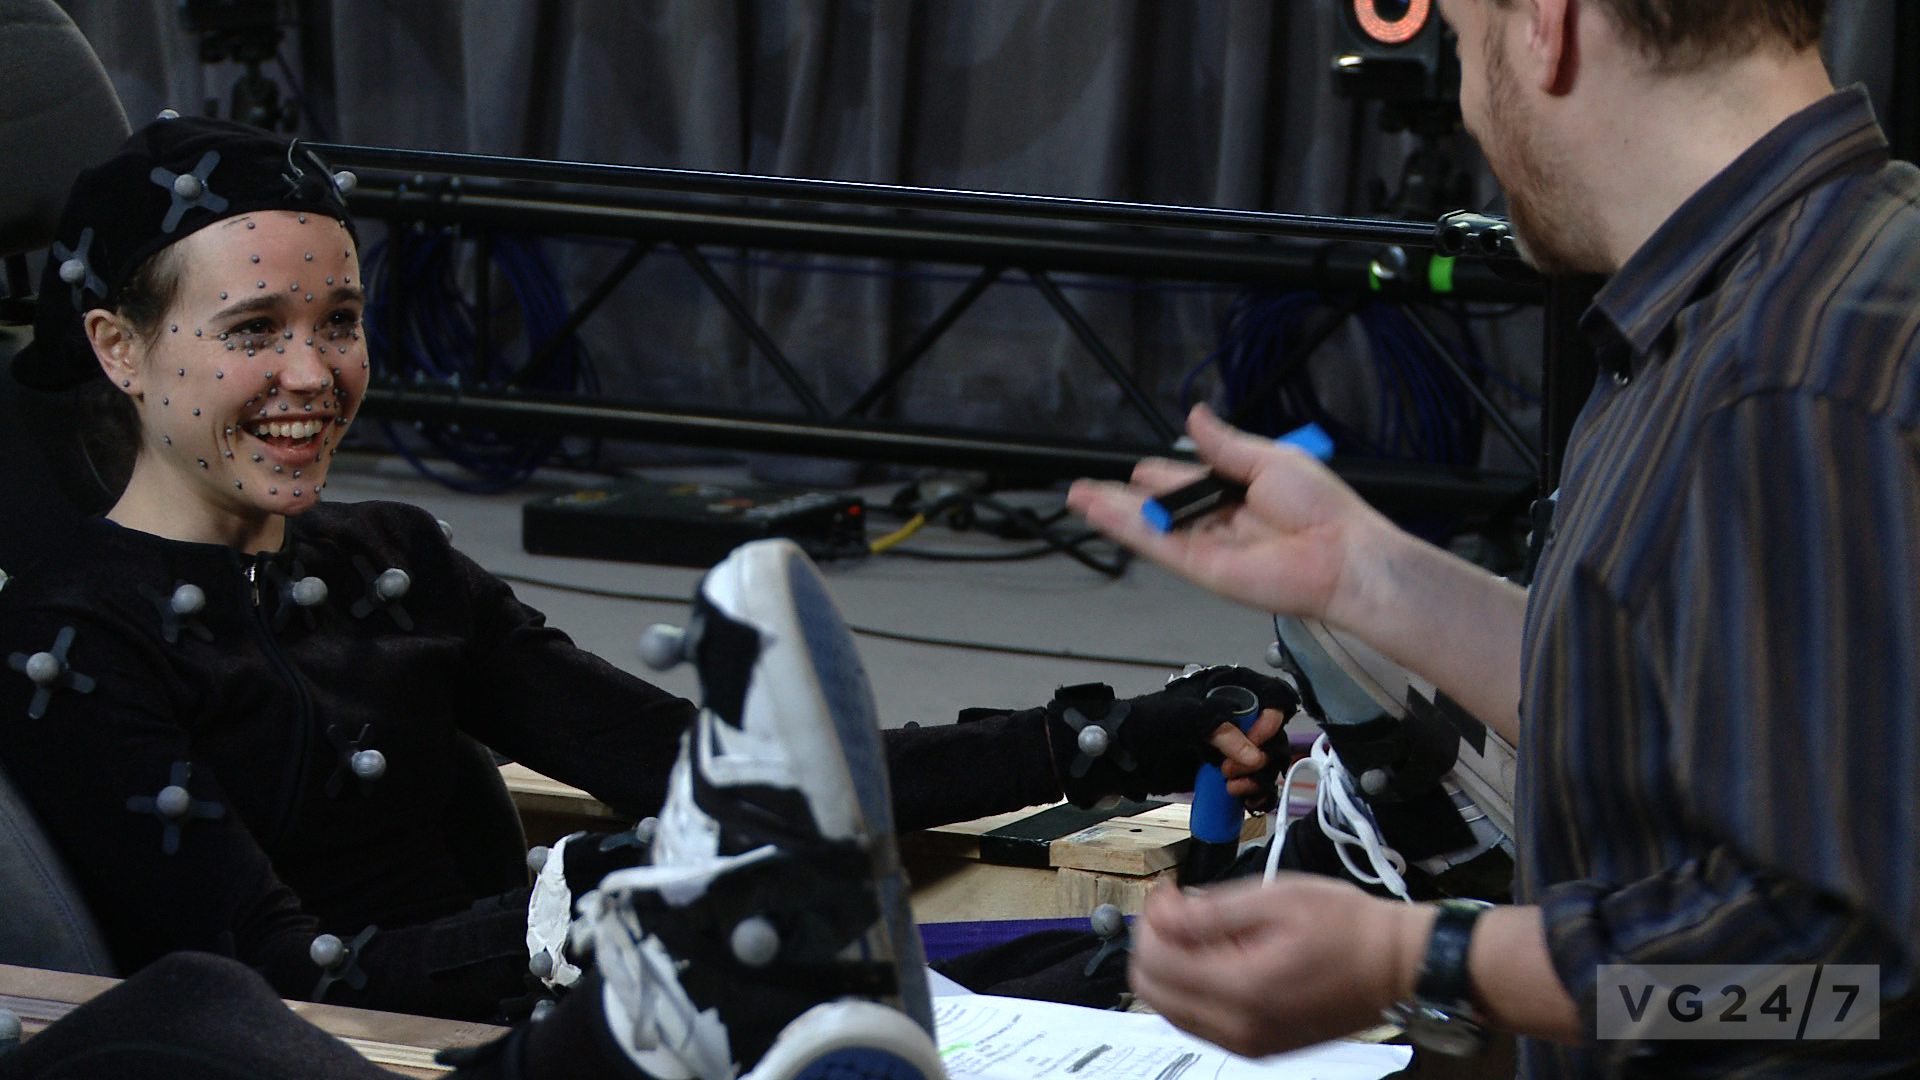 Beyond: Two Souls cast photos show motion capture work - VG247